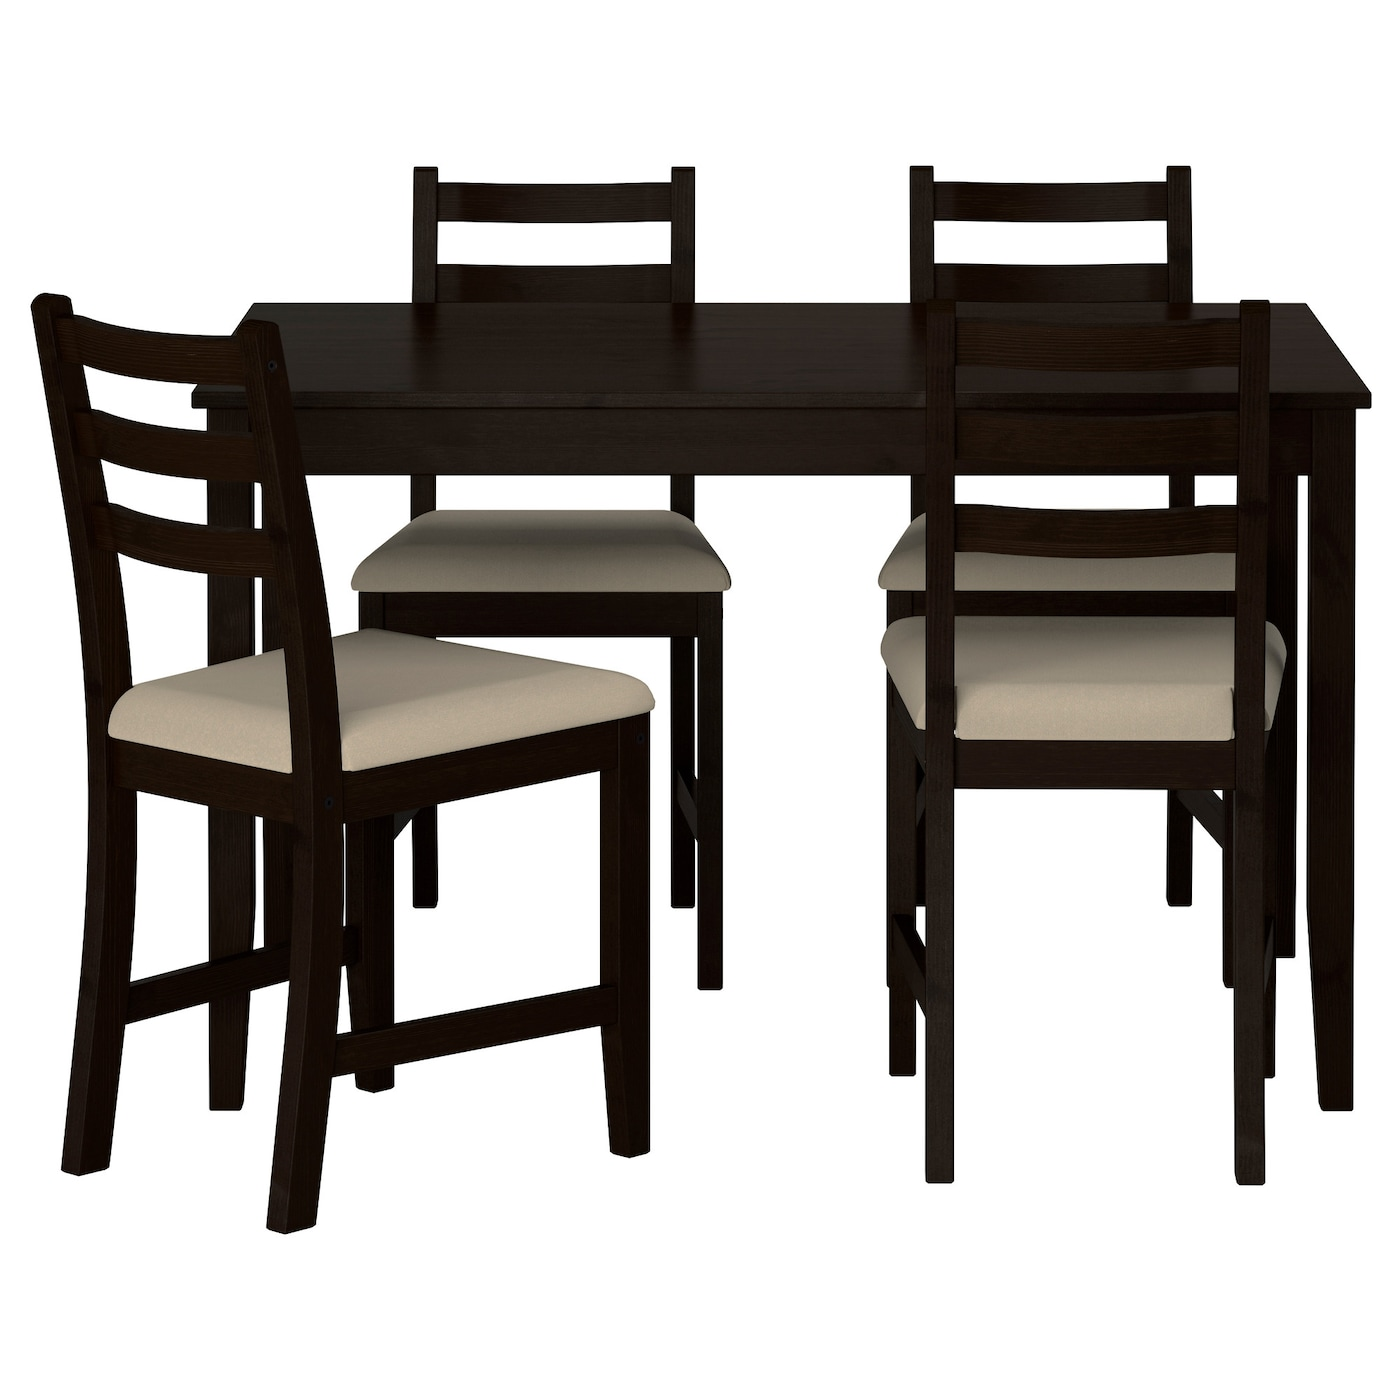 LERHAMN Table and 4 chairs, black-brown, Vittaryd beige